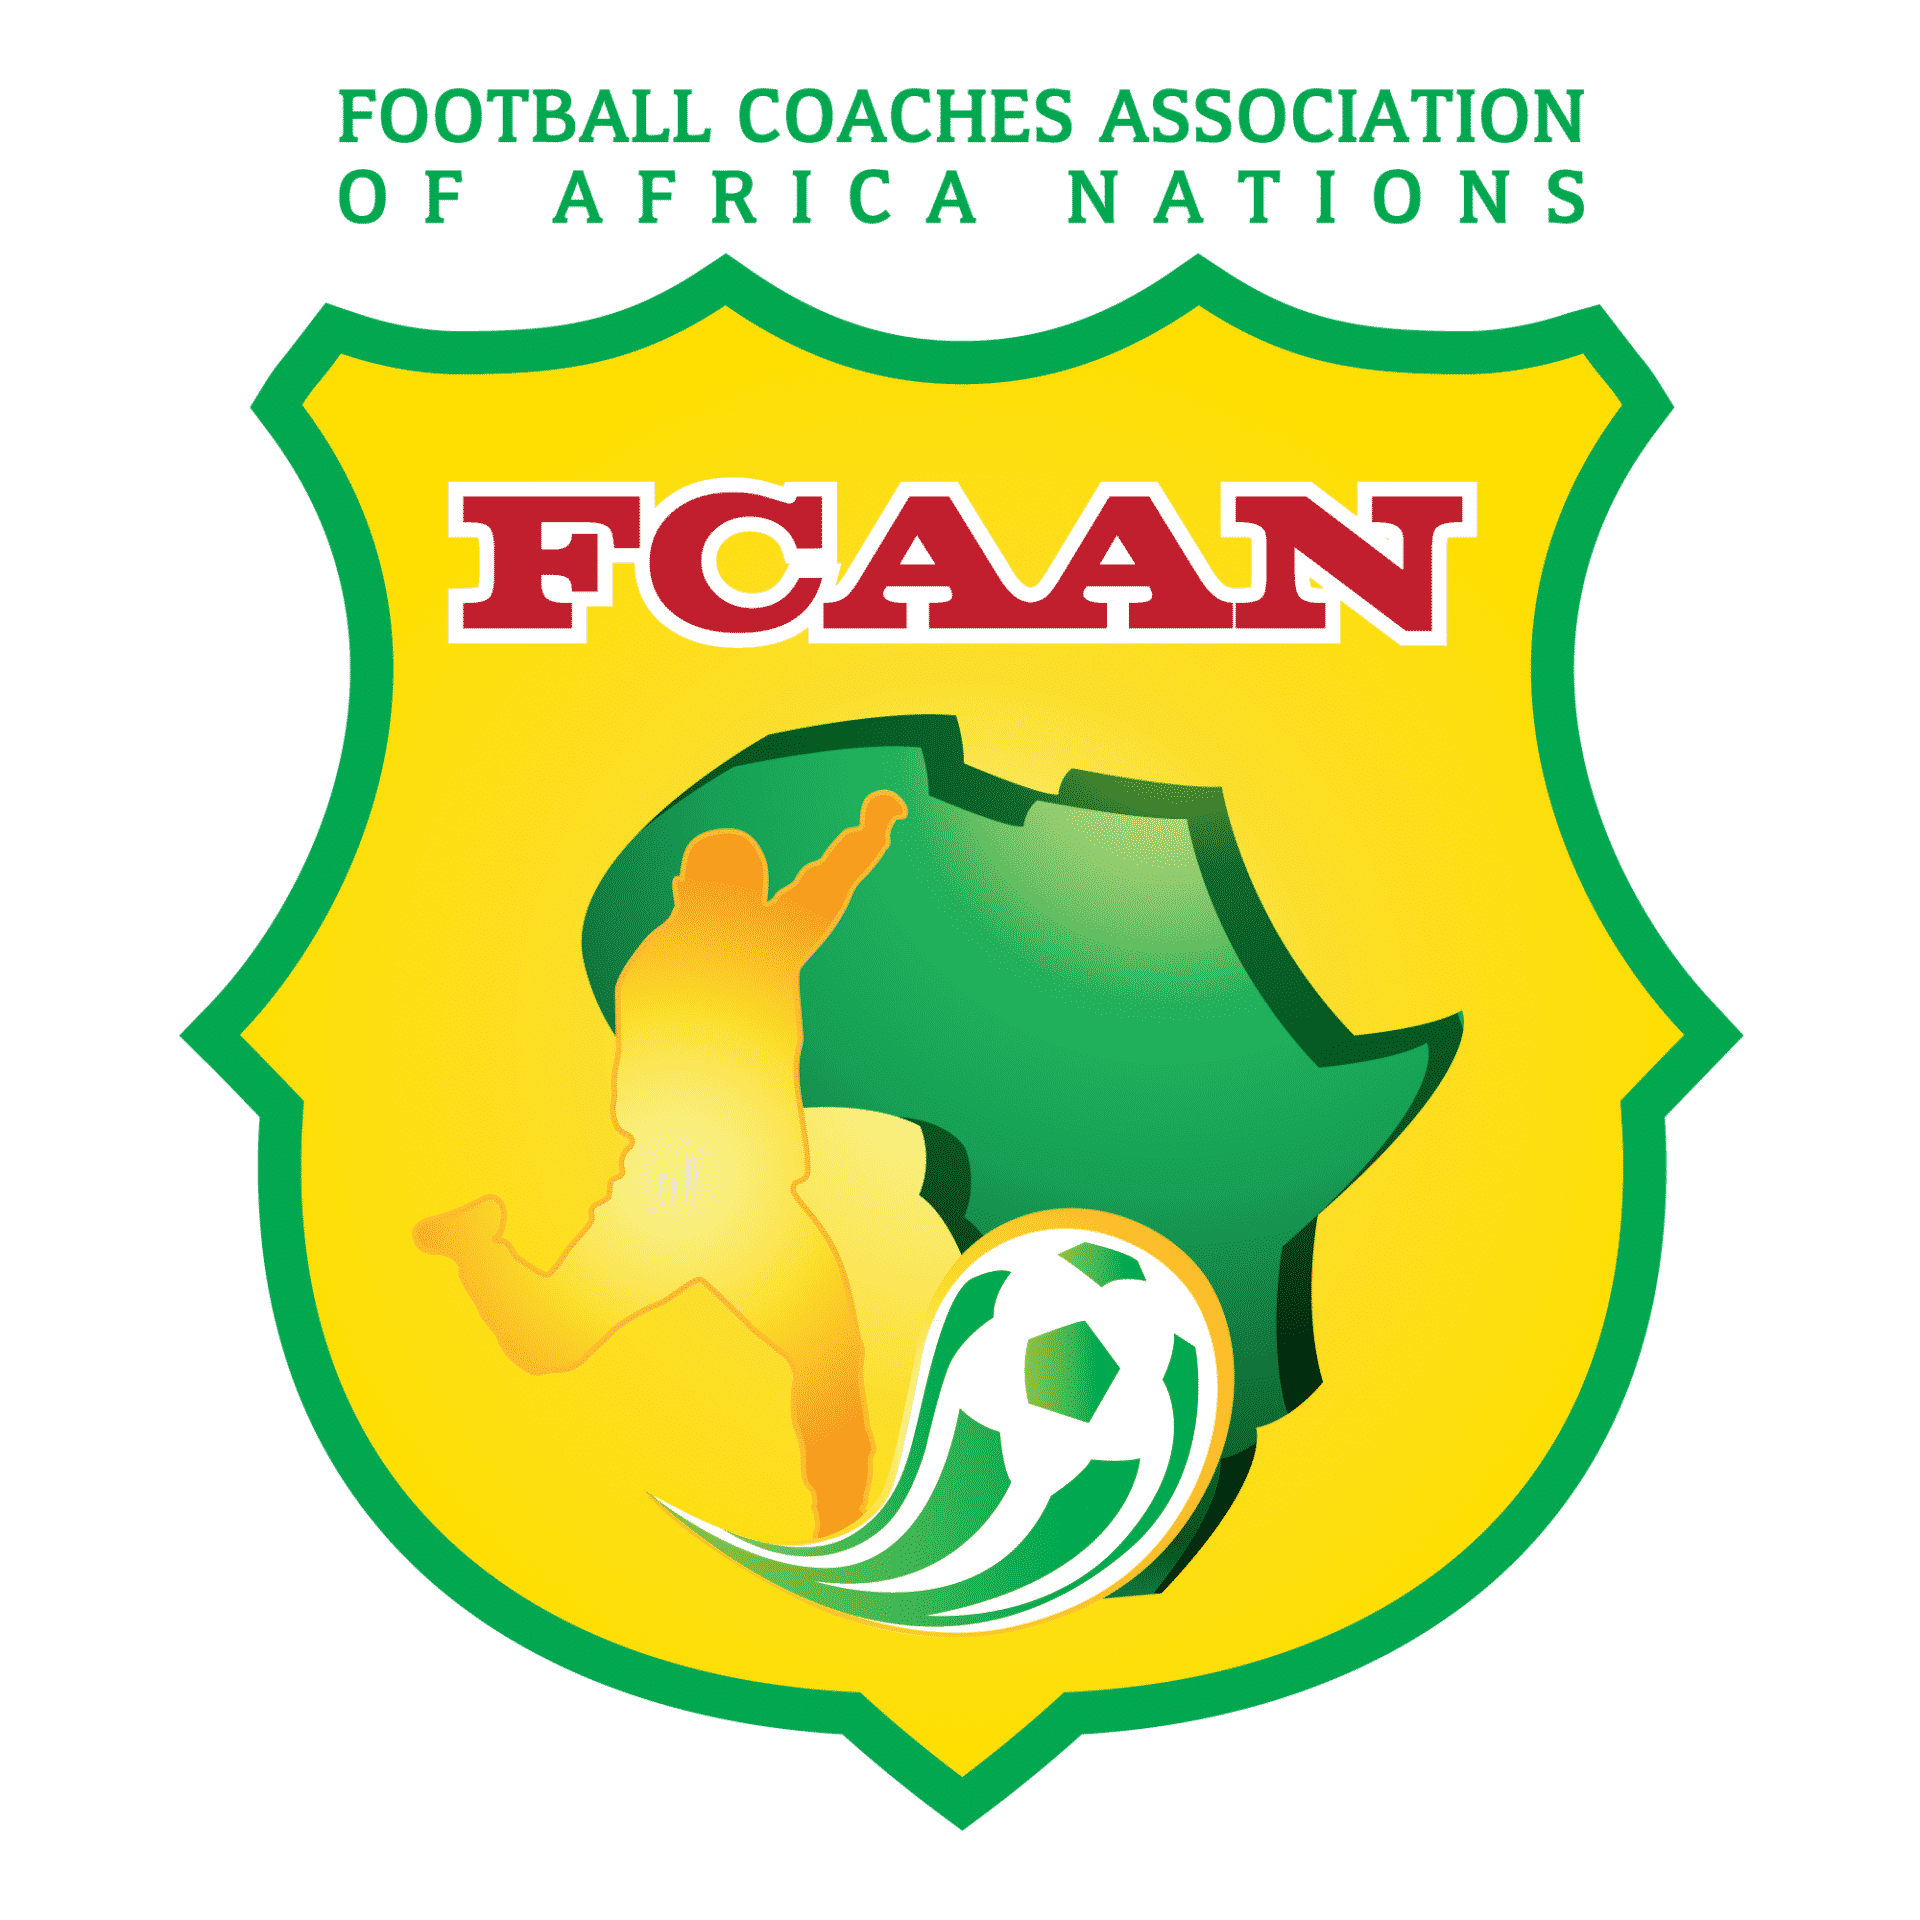 FCAAN Football Coaches Association of Africa Nations logo